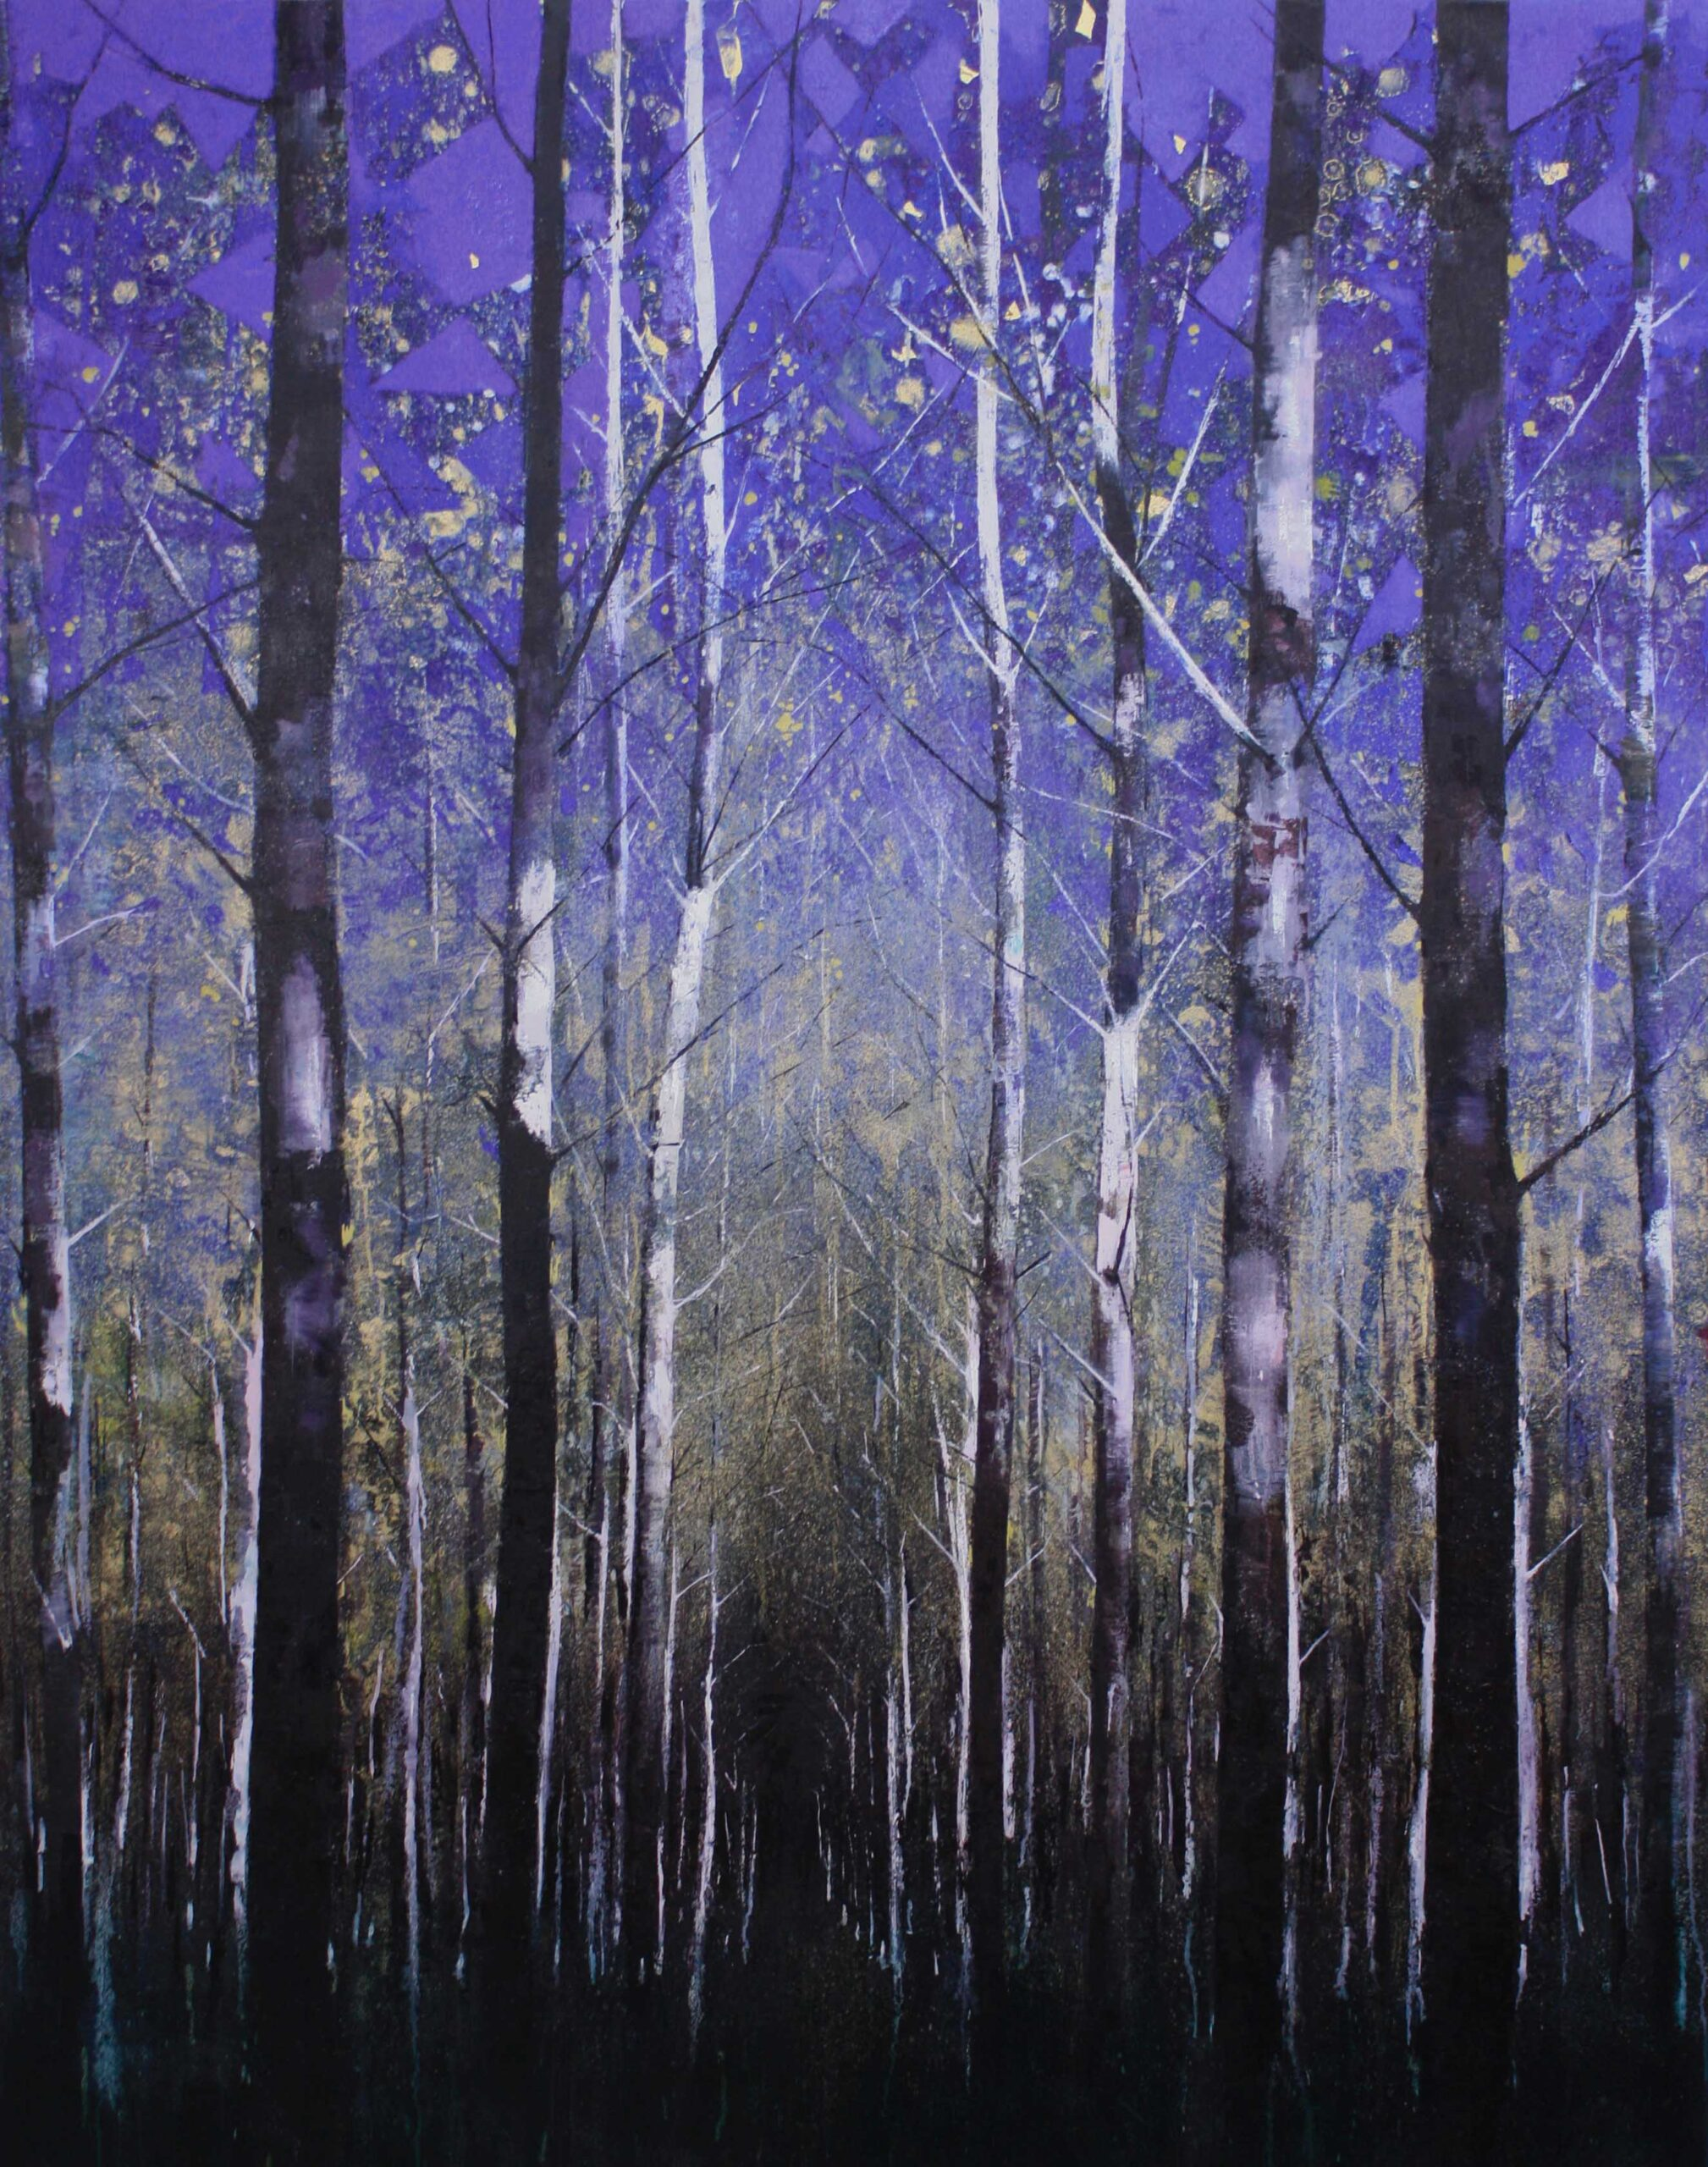 Forest, blue and gold 168 x 132 cm oil on canvas